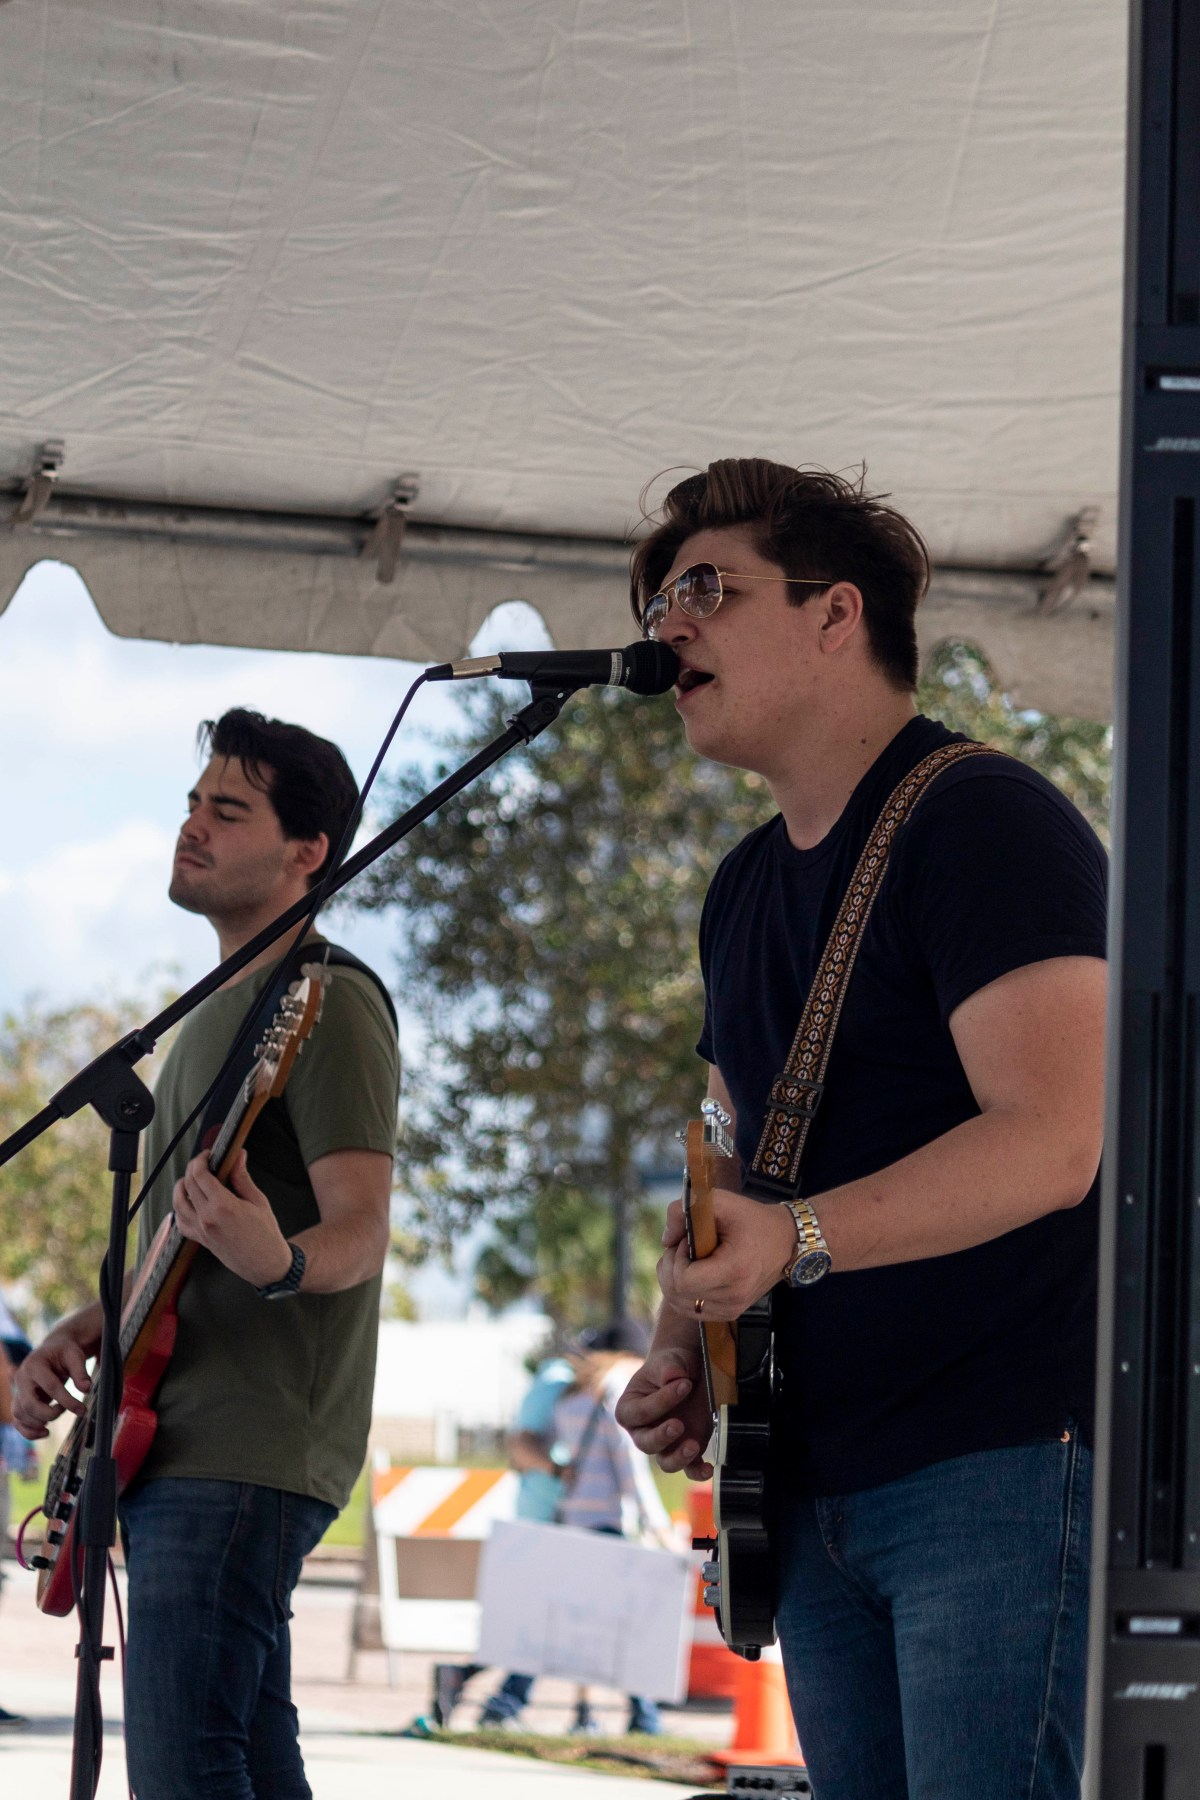 FAM Band Performing at Veg Fest 2019